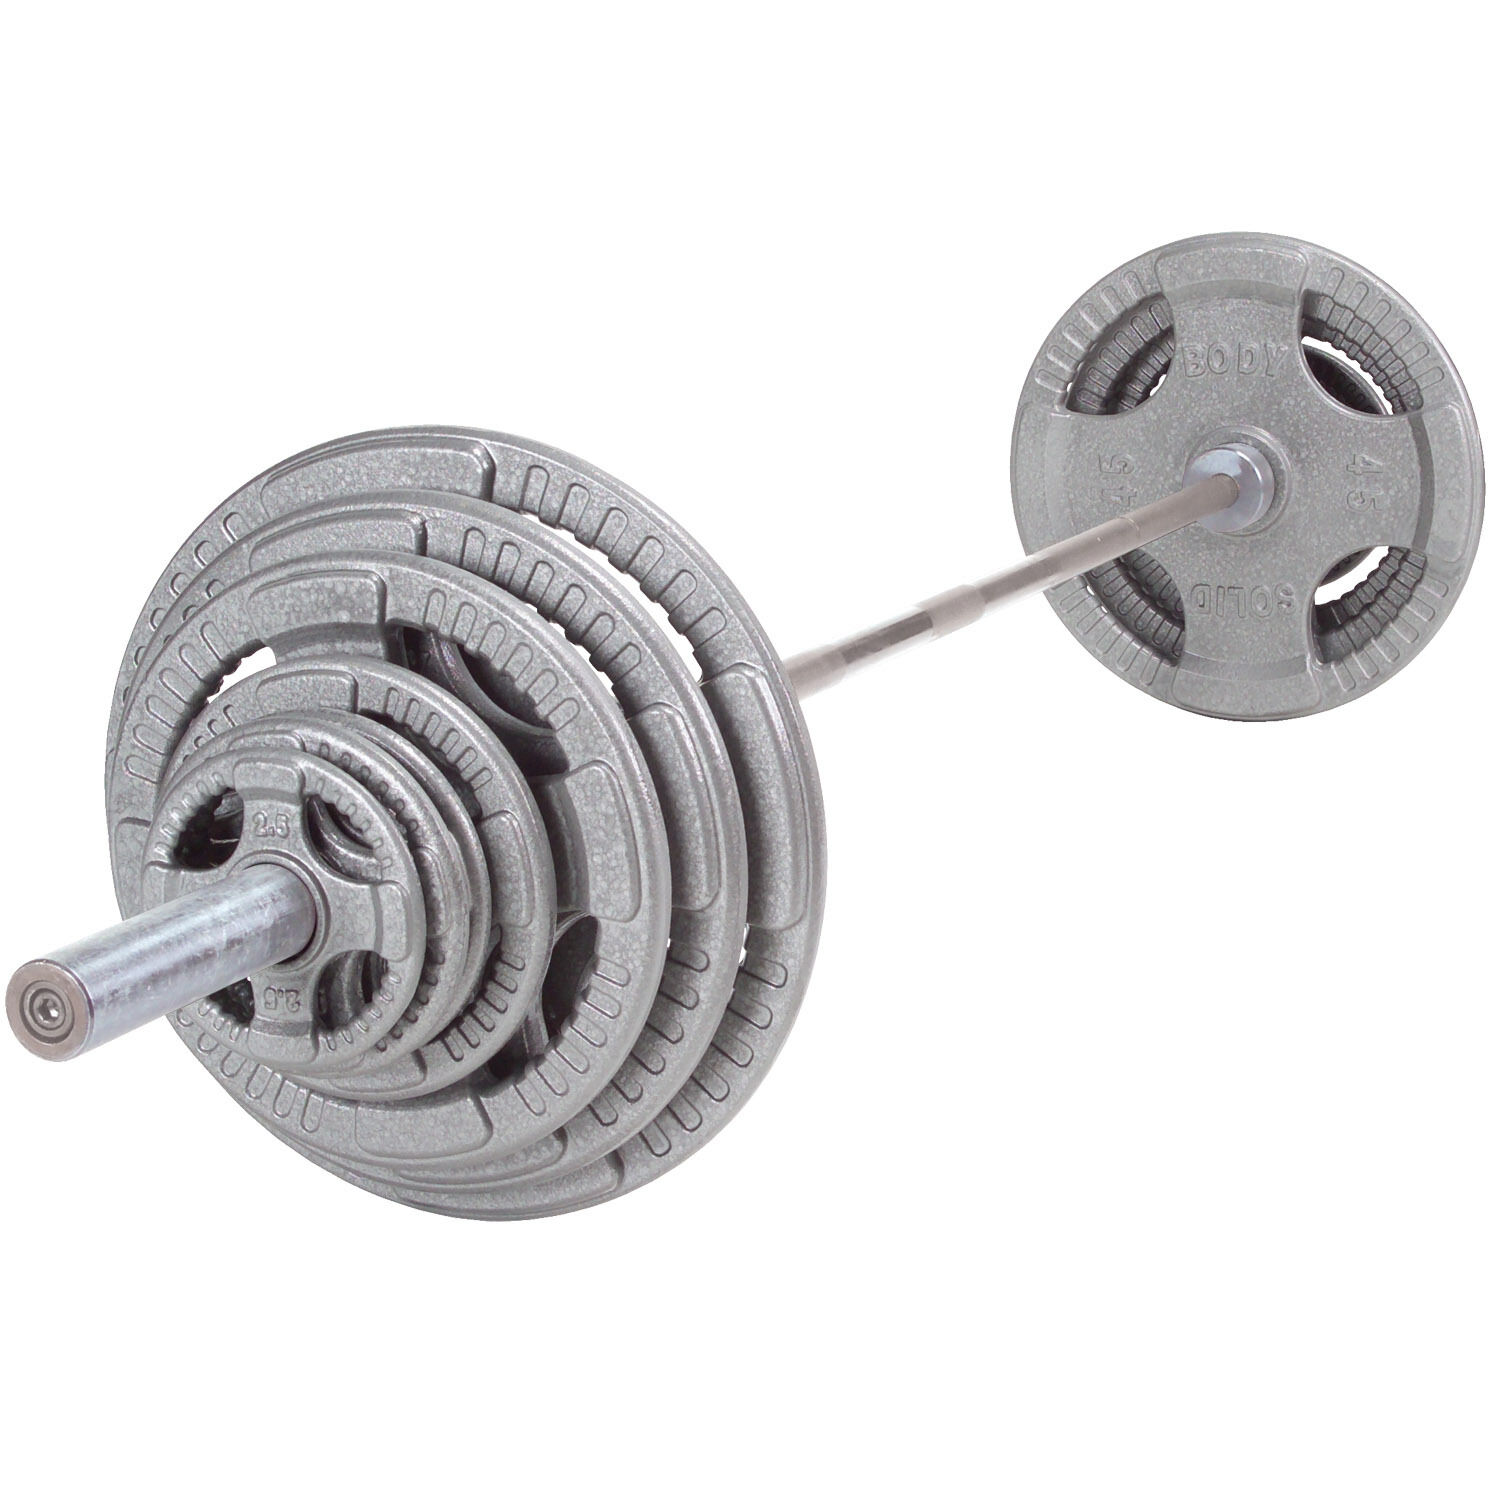 300 lb Steel Grip Weight  Set with Bar and Collars - Body-Solid Fitness OST300S  top brands sell cheap